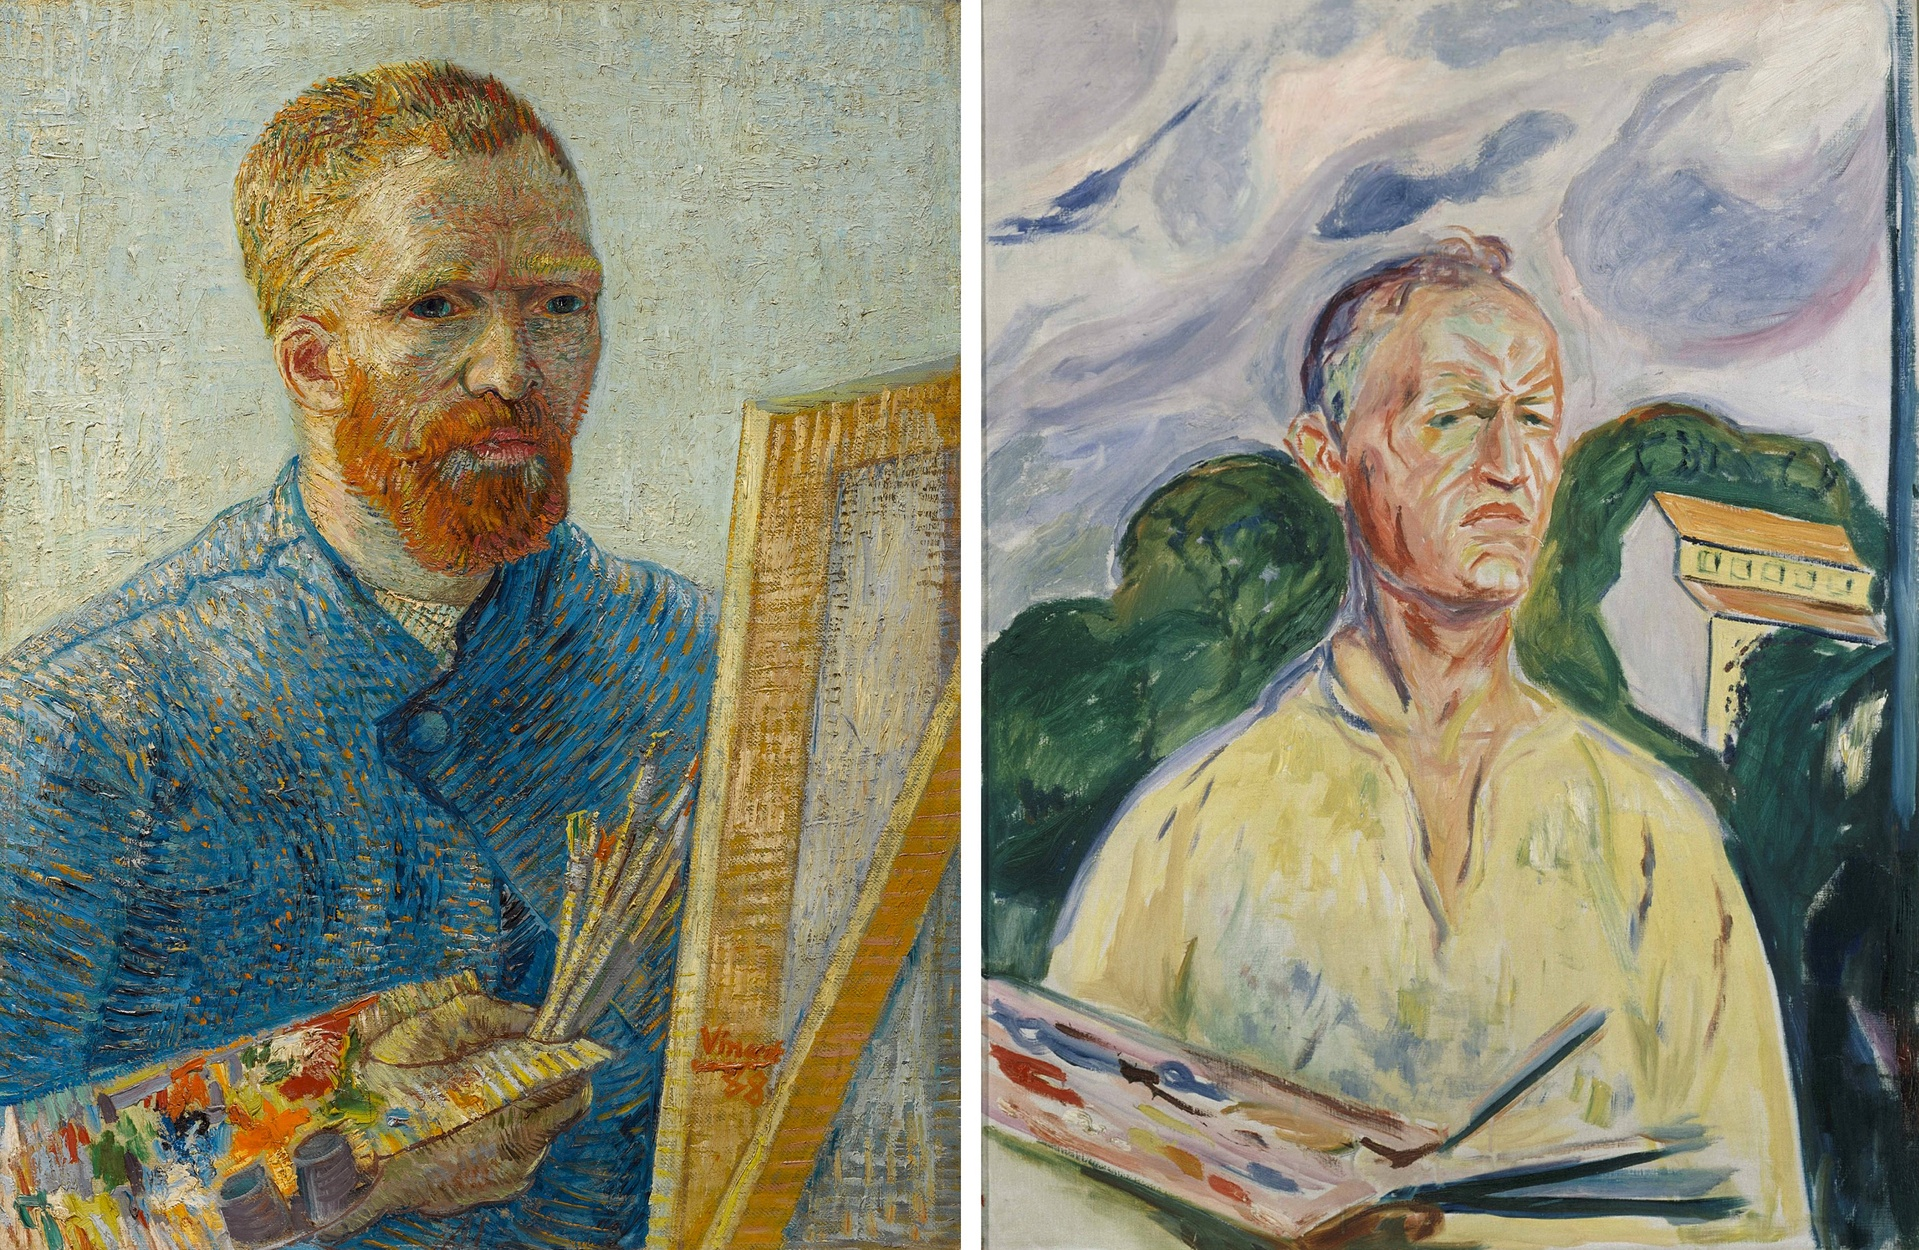 Self-Portrait as a Painter (1887-88) by Vincent van Gogh; and Self-Portrait with Palette (1926) by Edvard Munch. Photograph: Reuters